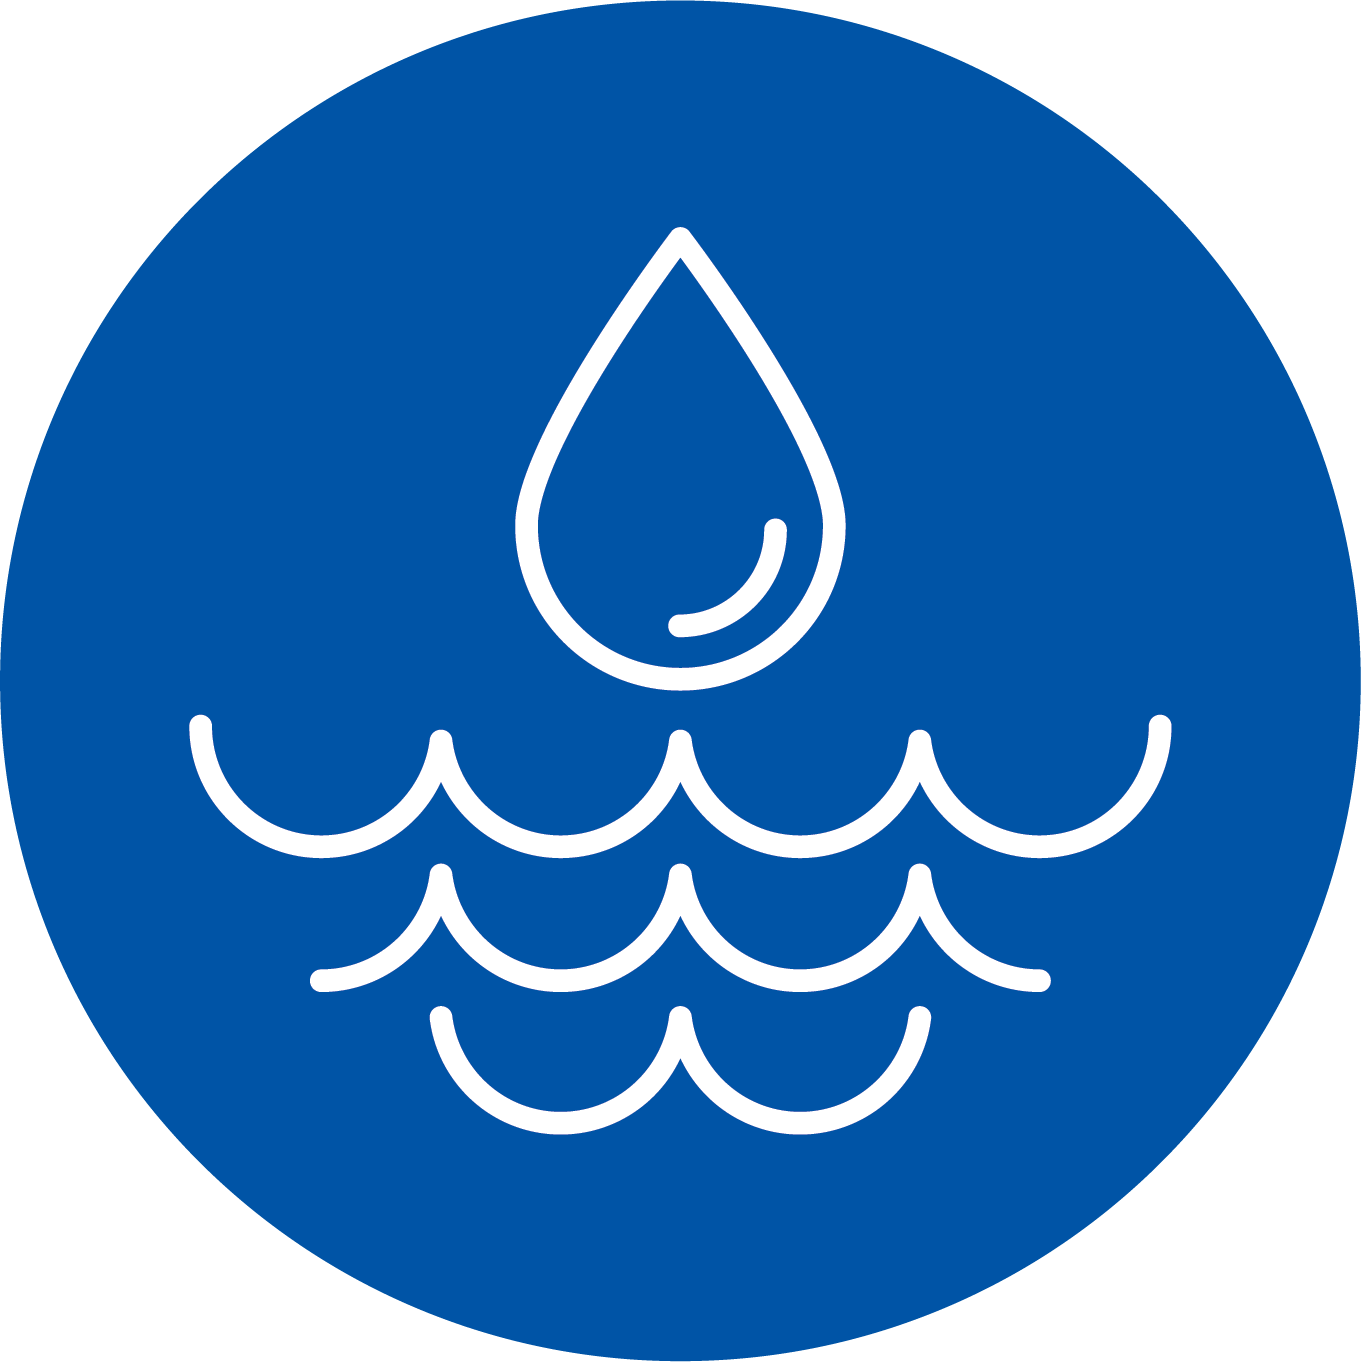 watering hole icon